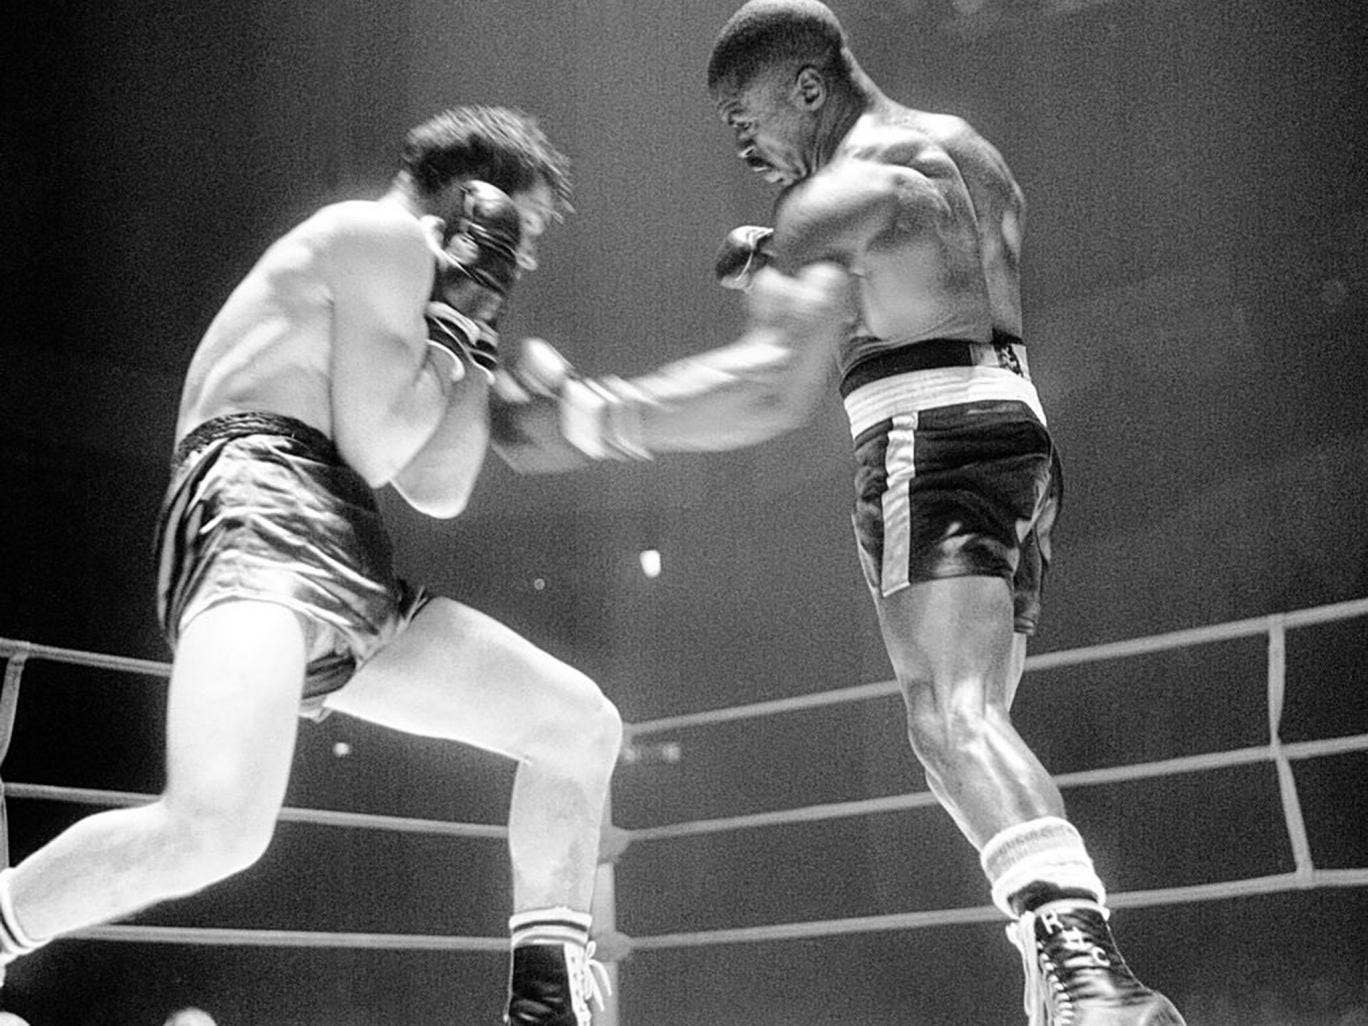 Carter, right, on his way to knocking out the Italian boxer Fabio Bettini in Paris in 1965